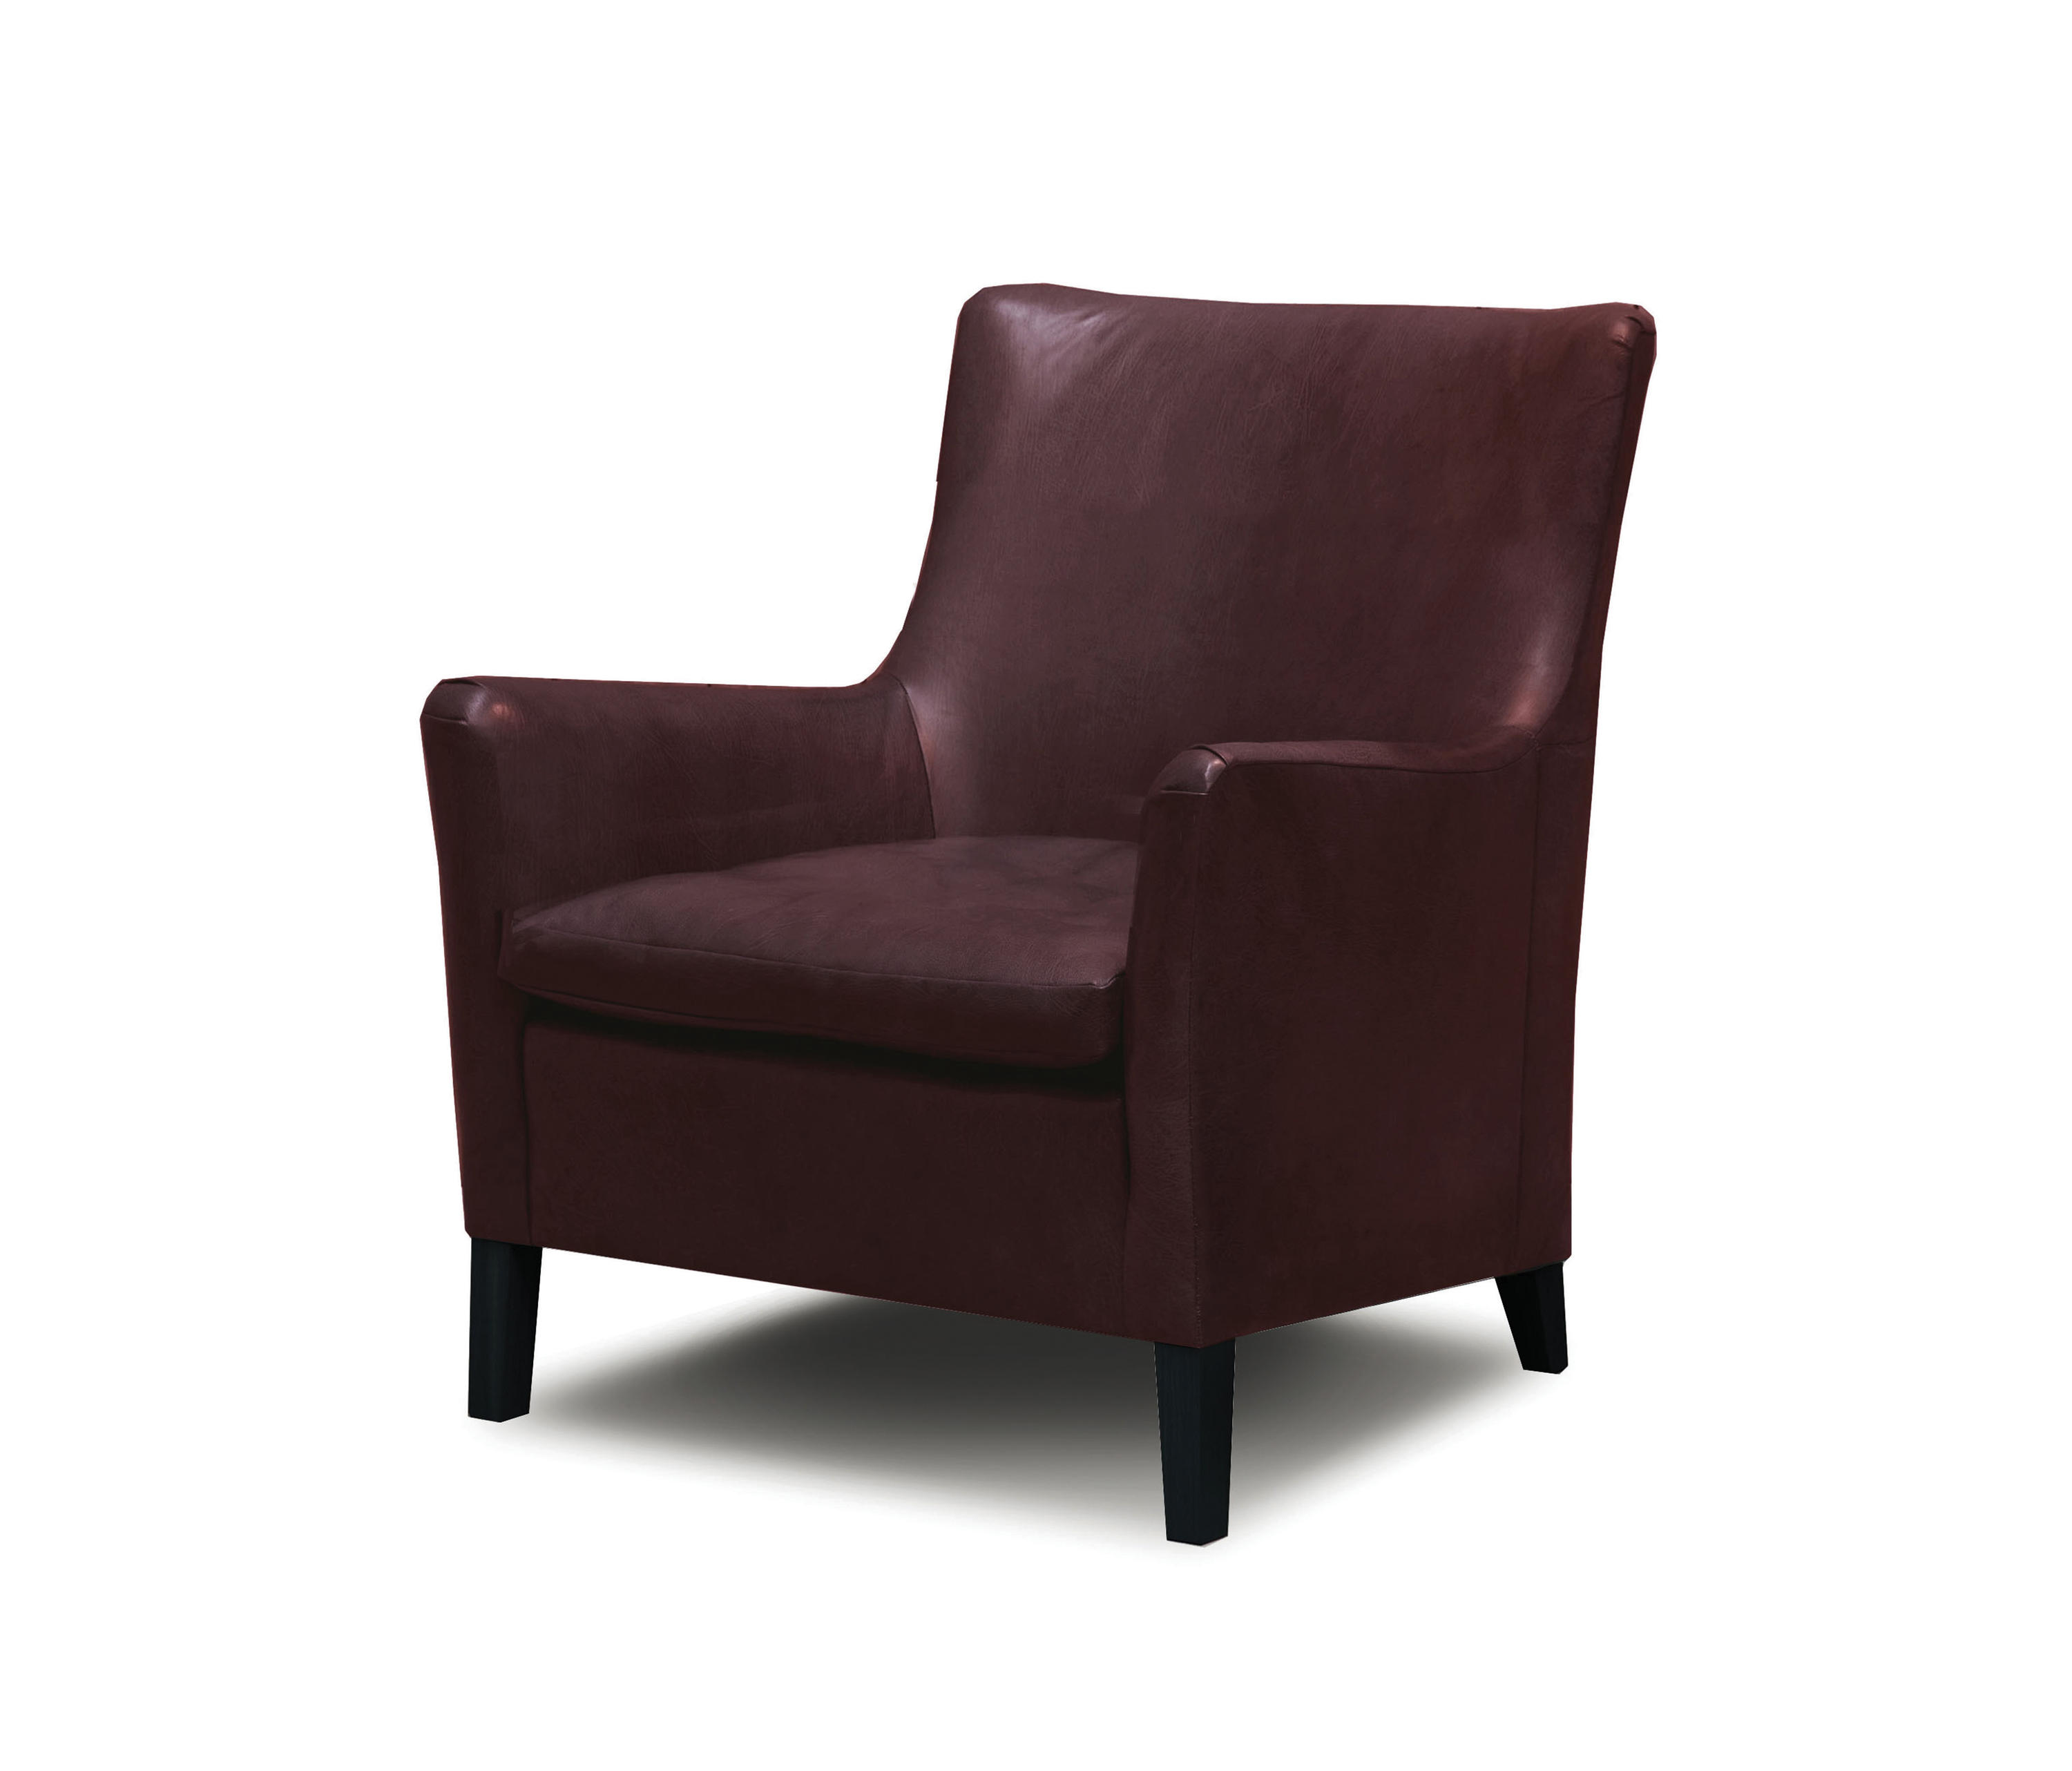 Low Back Chairs Brody Low Back Armchair Lounge Chairs From Pinch